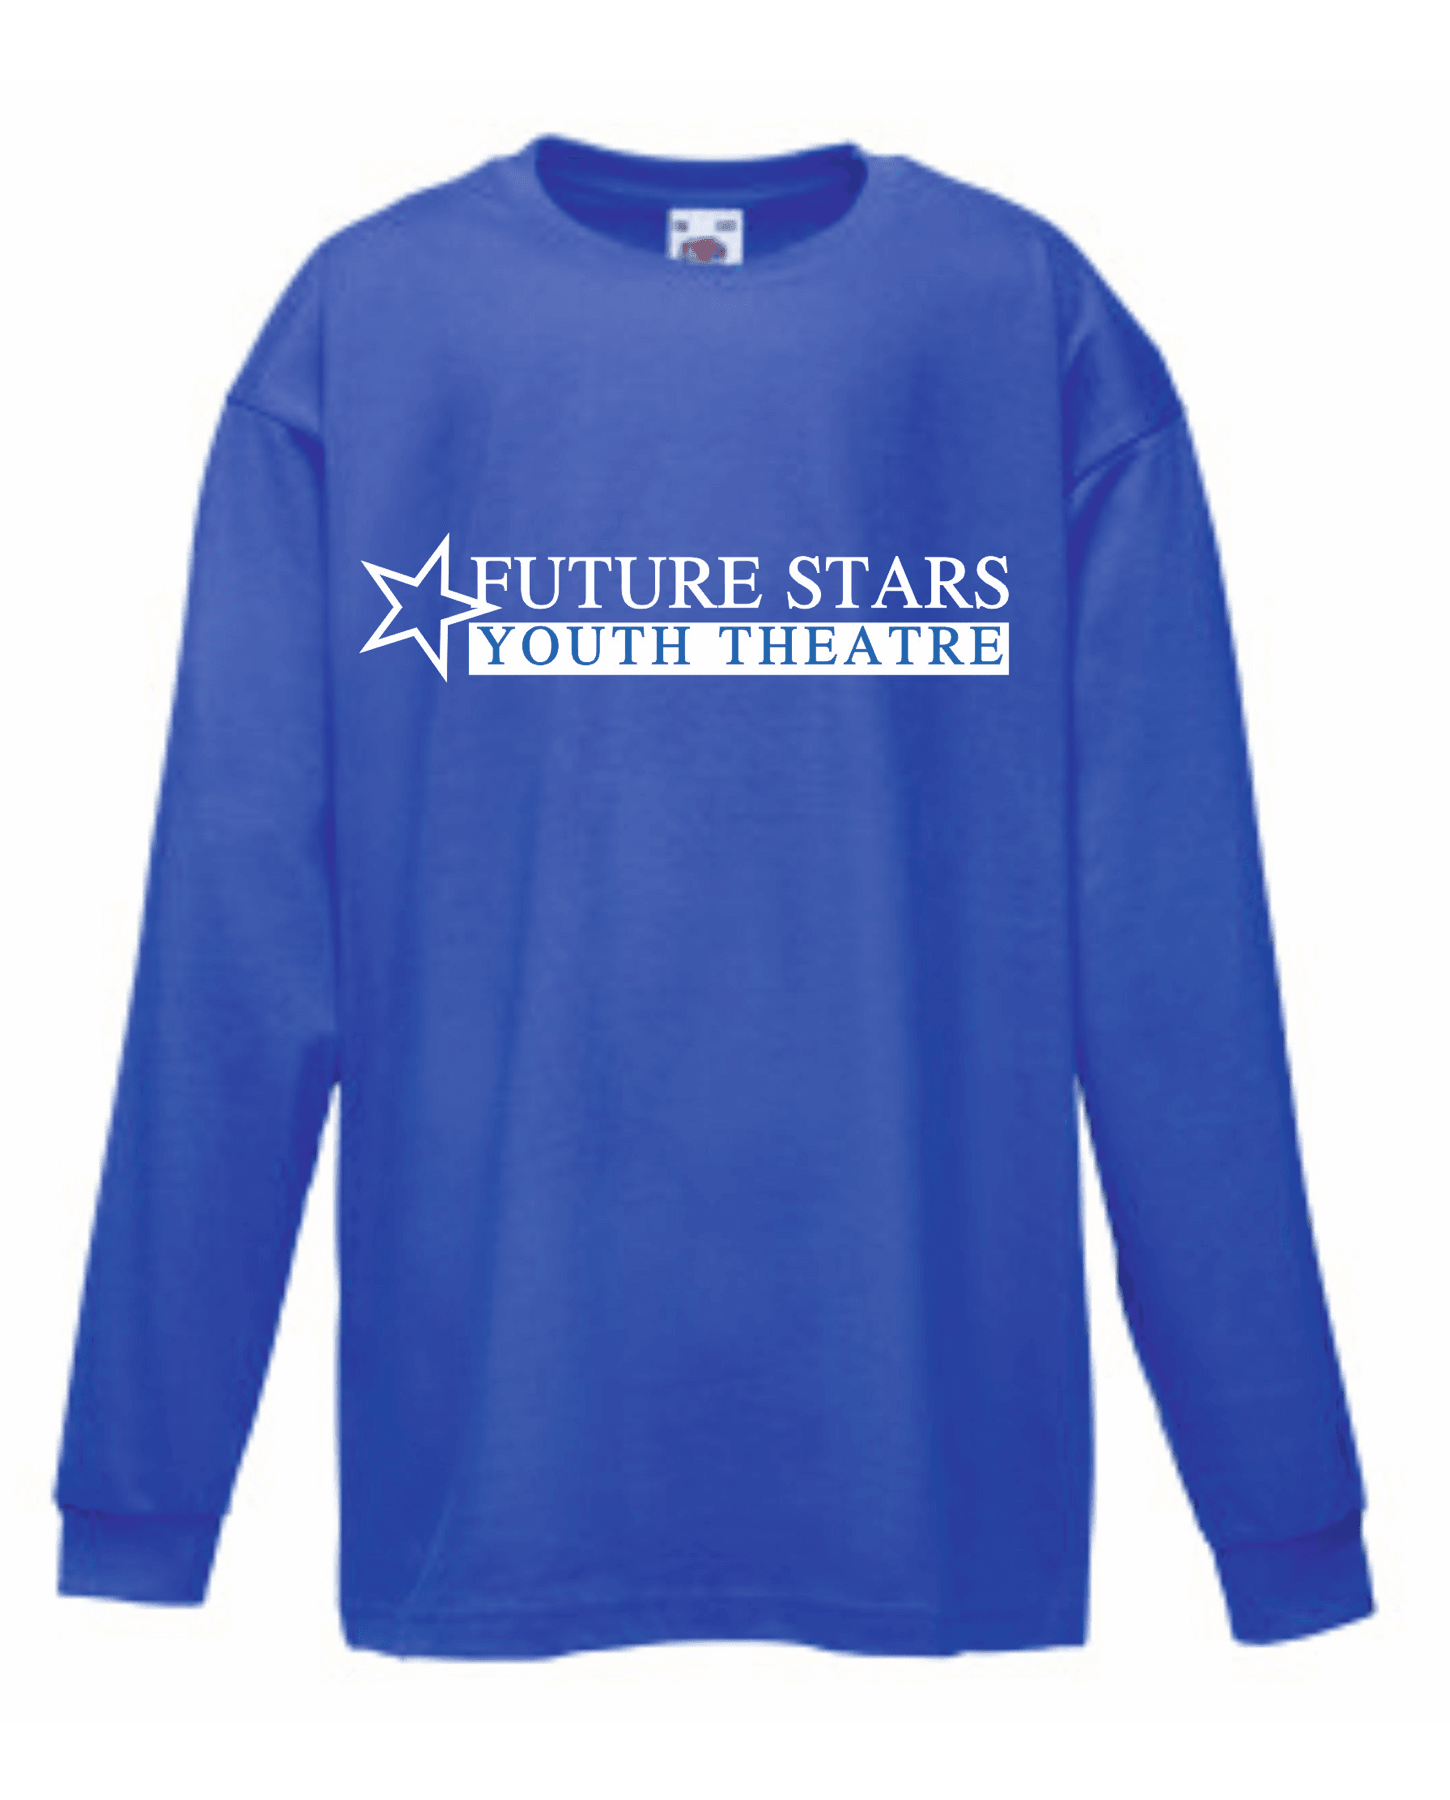 Future Stars Youth Theatre – Kids Long Sleeve T-Shirt